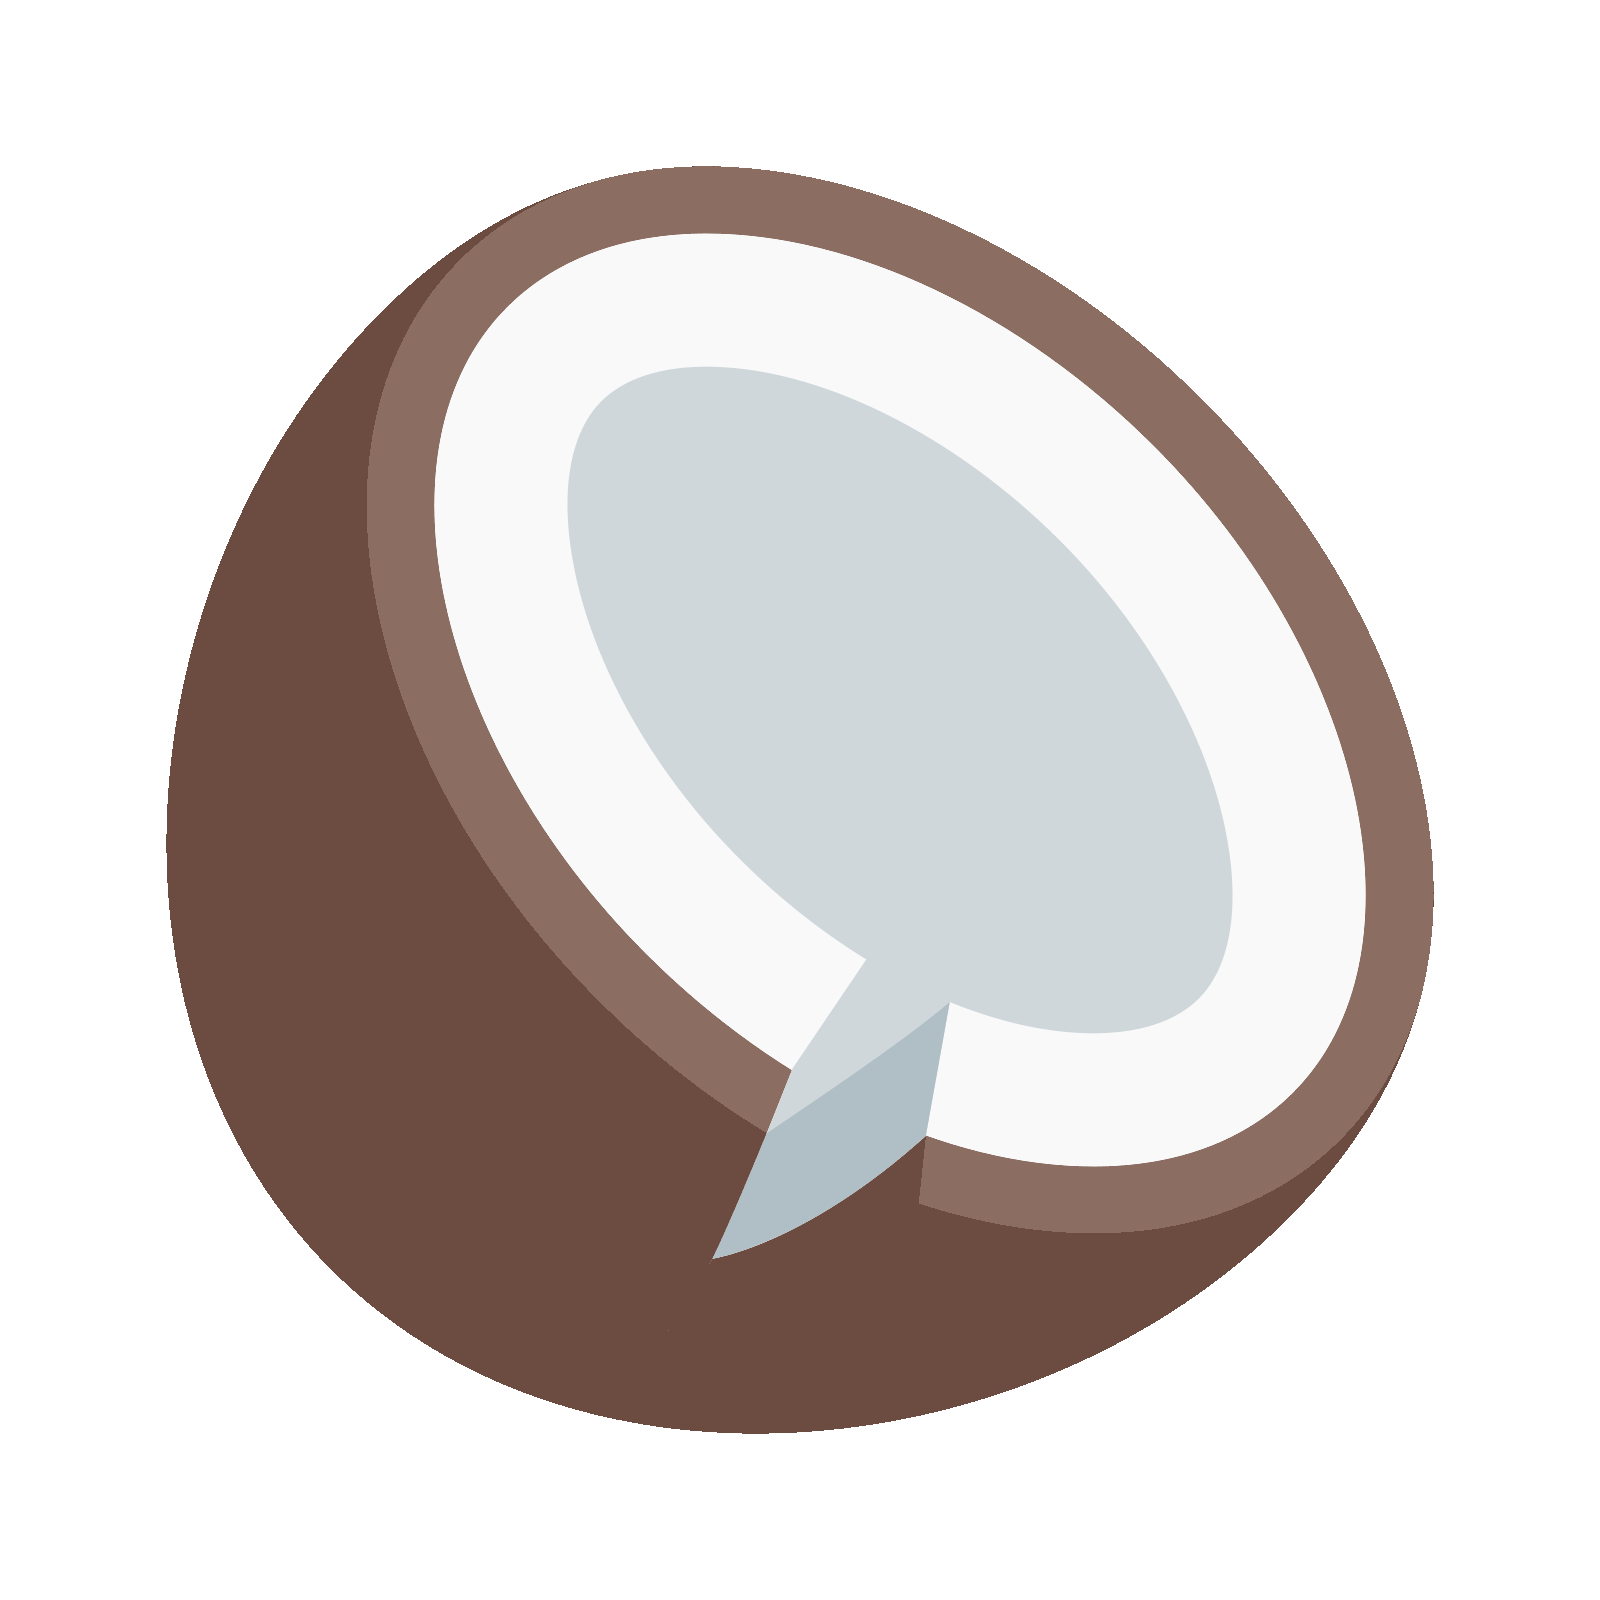 Coconut icon free download. Coco png banner stock